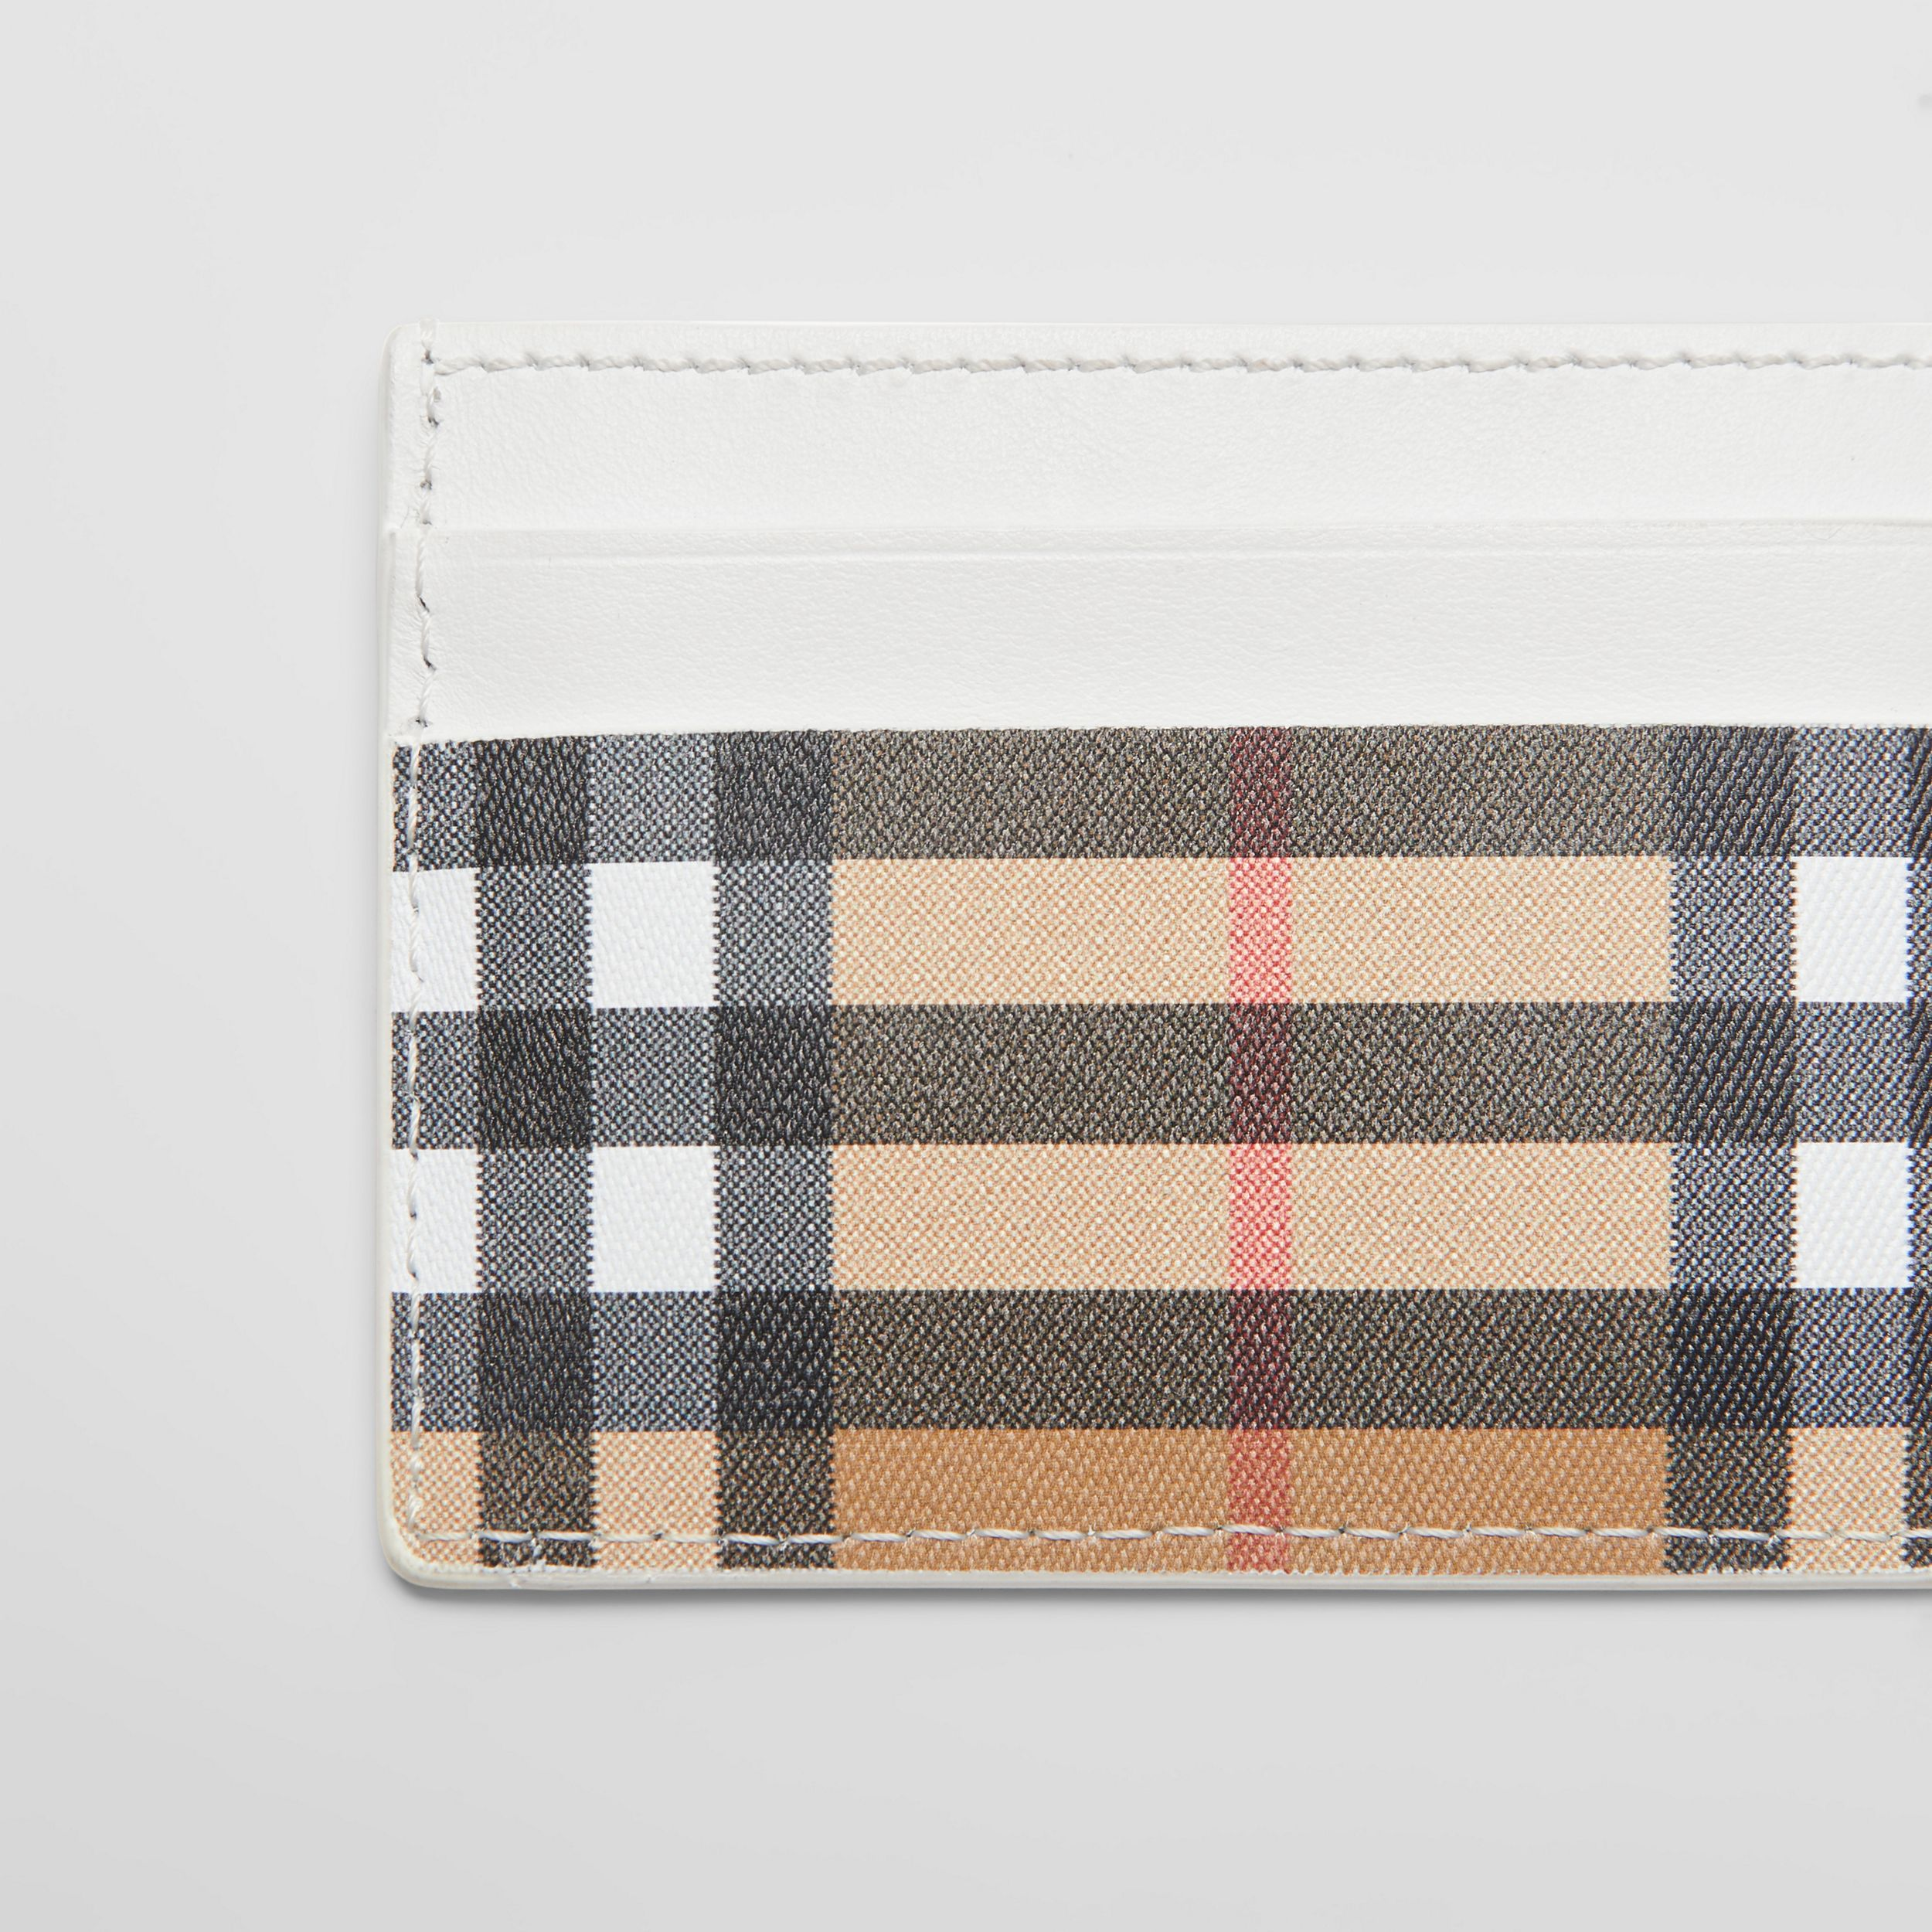 Vintage Check and Leather Card Case in Chalk White - Women | Burberry - 2